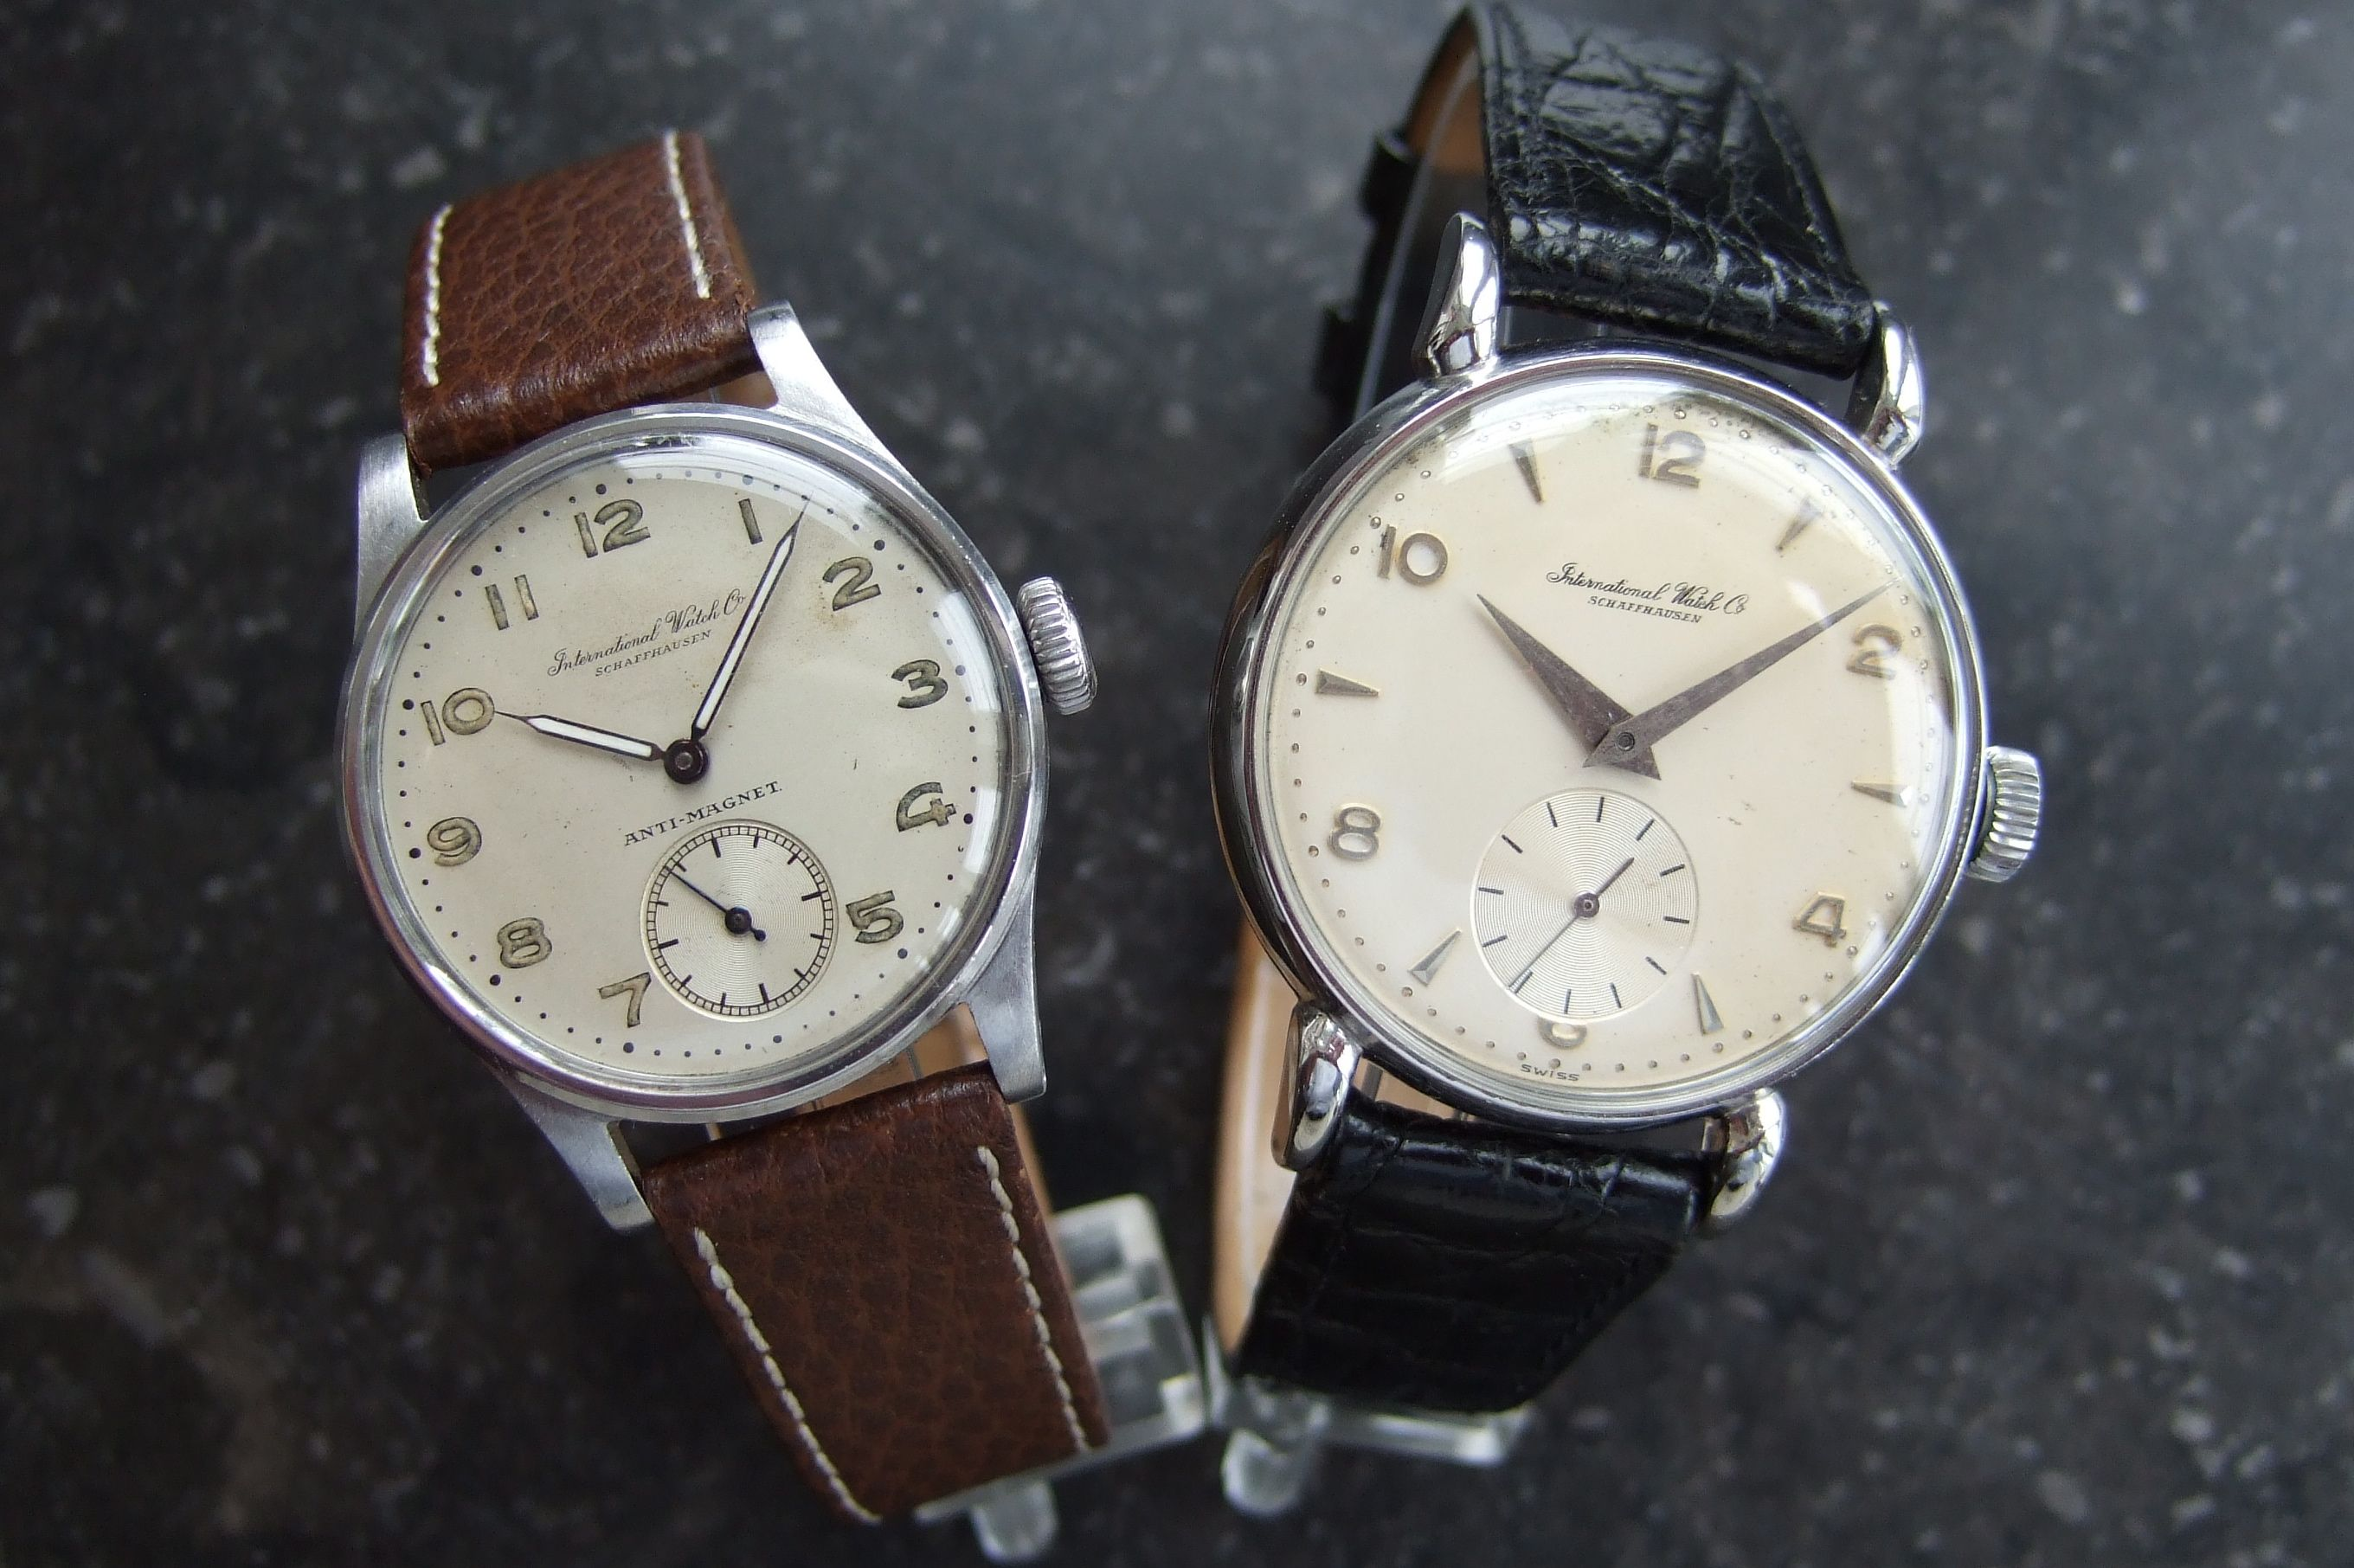 A pair of lovely vintage and heirloom IWC watches